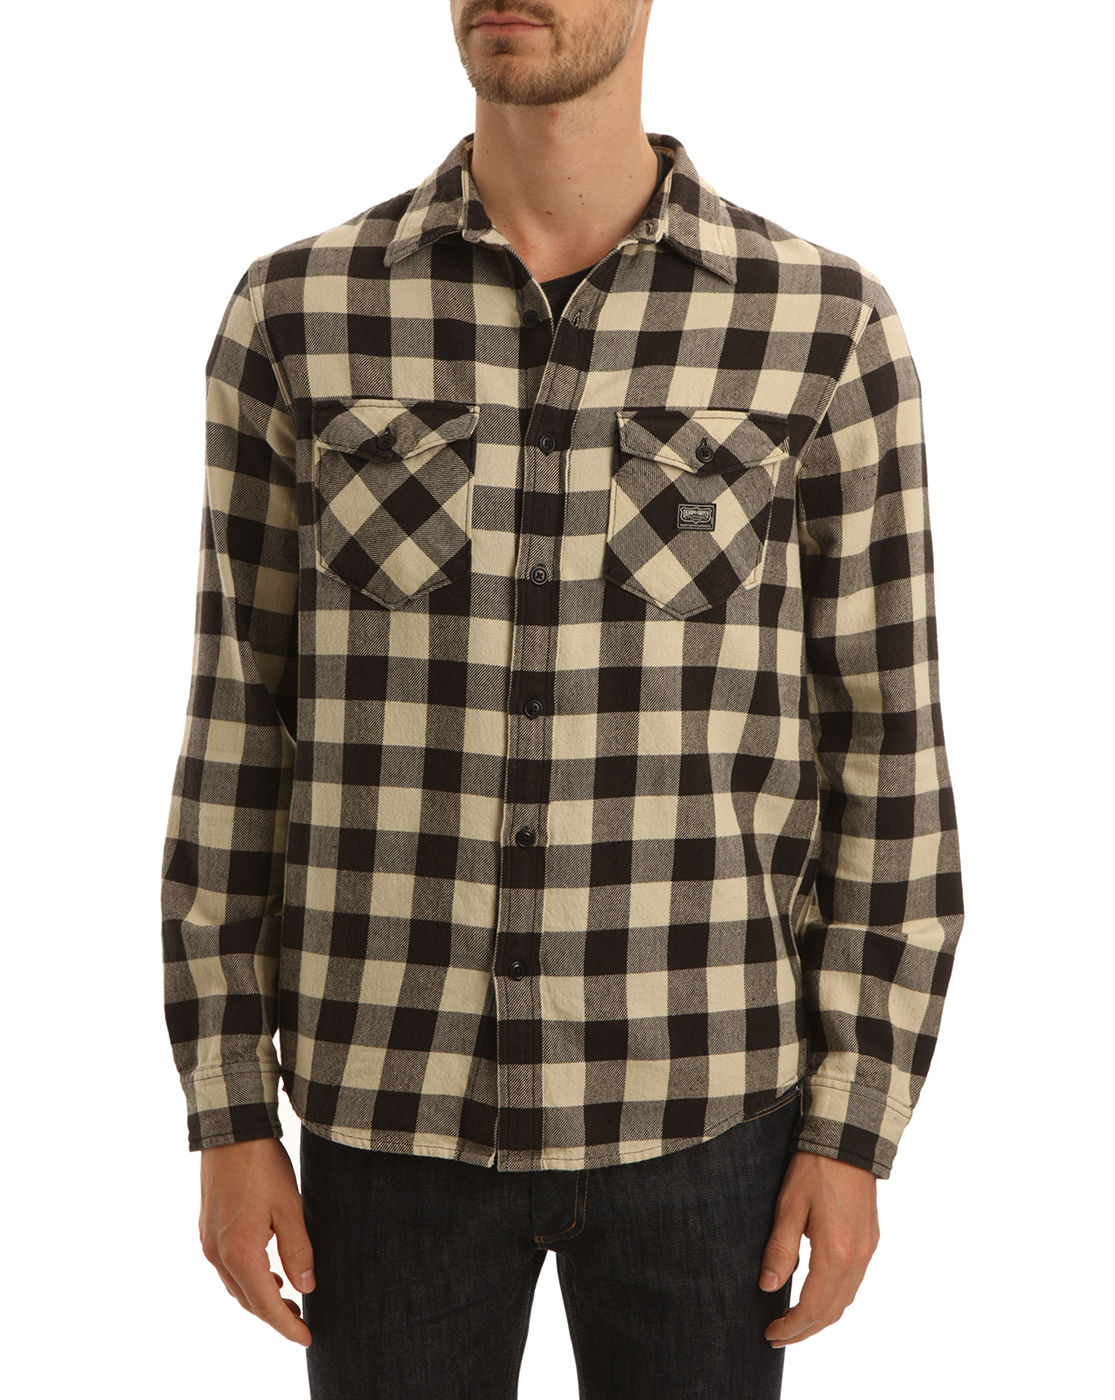 Denim supply ralph lauren ward plaid cotton shirt in for Brown and black plaid shirt